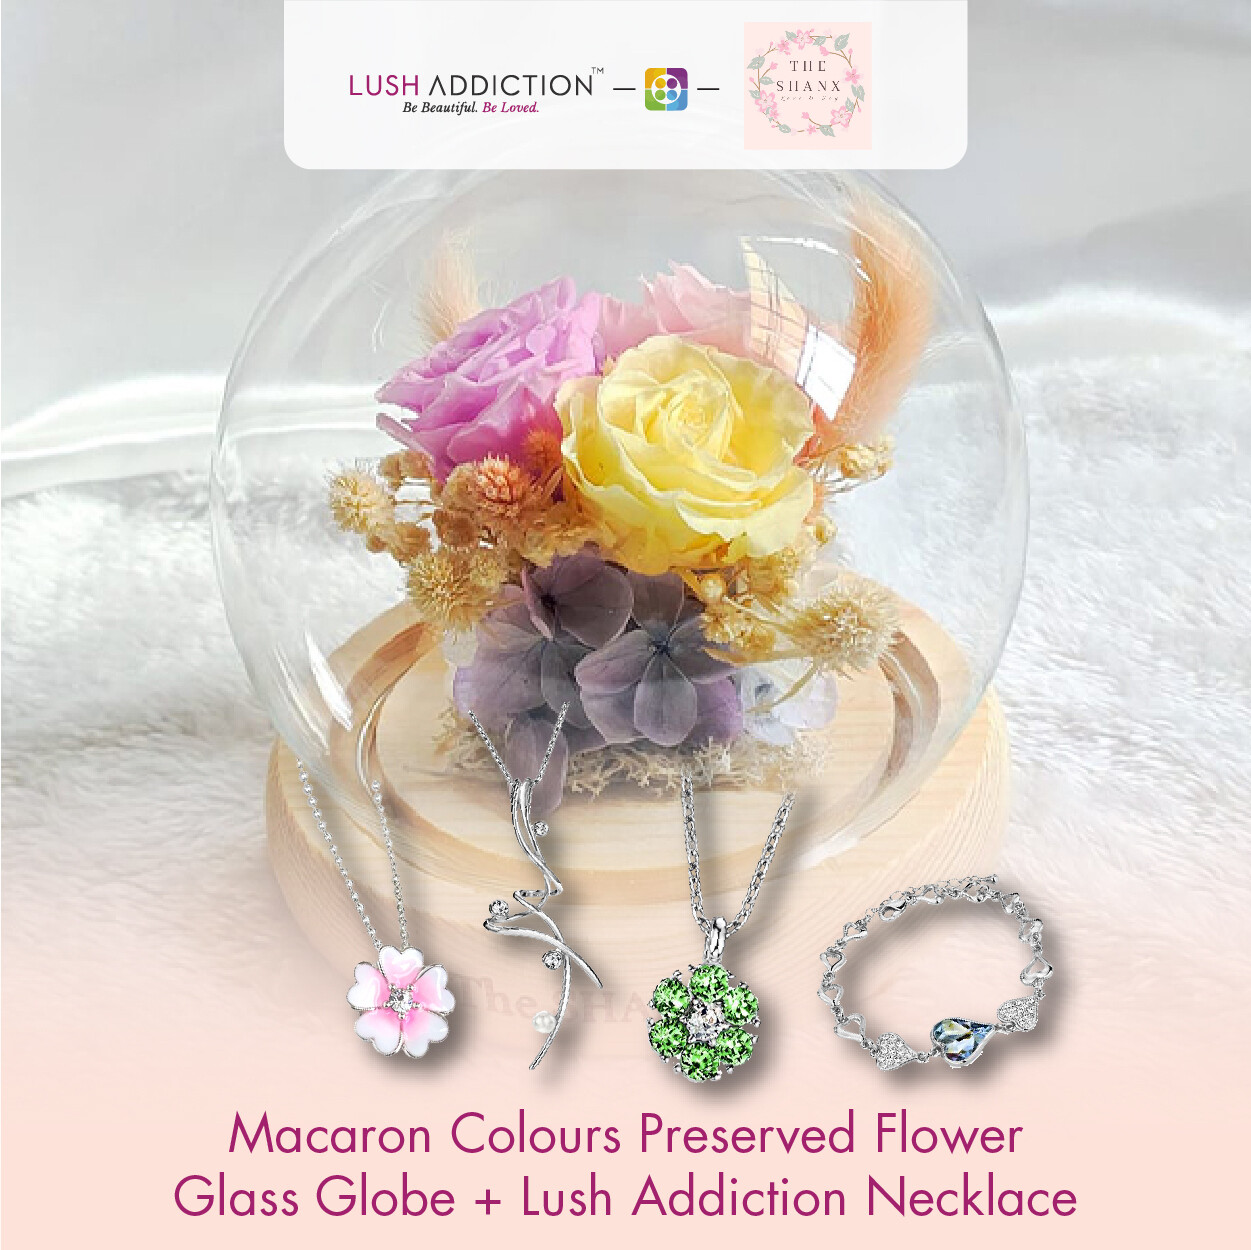 Macaron Colours Preserved Flower Glass Globe + Lush Addiction Necklace (By: The Shanx Florist from Melacca)